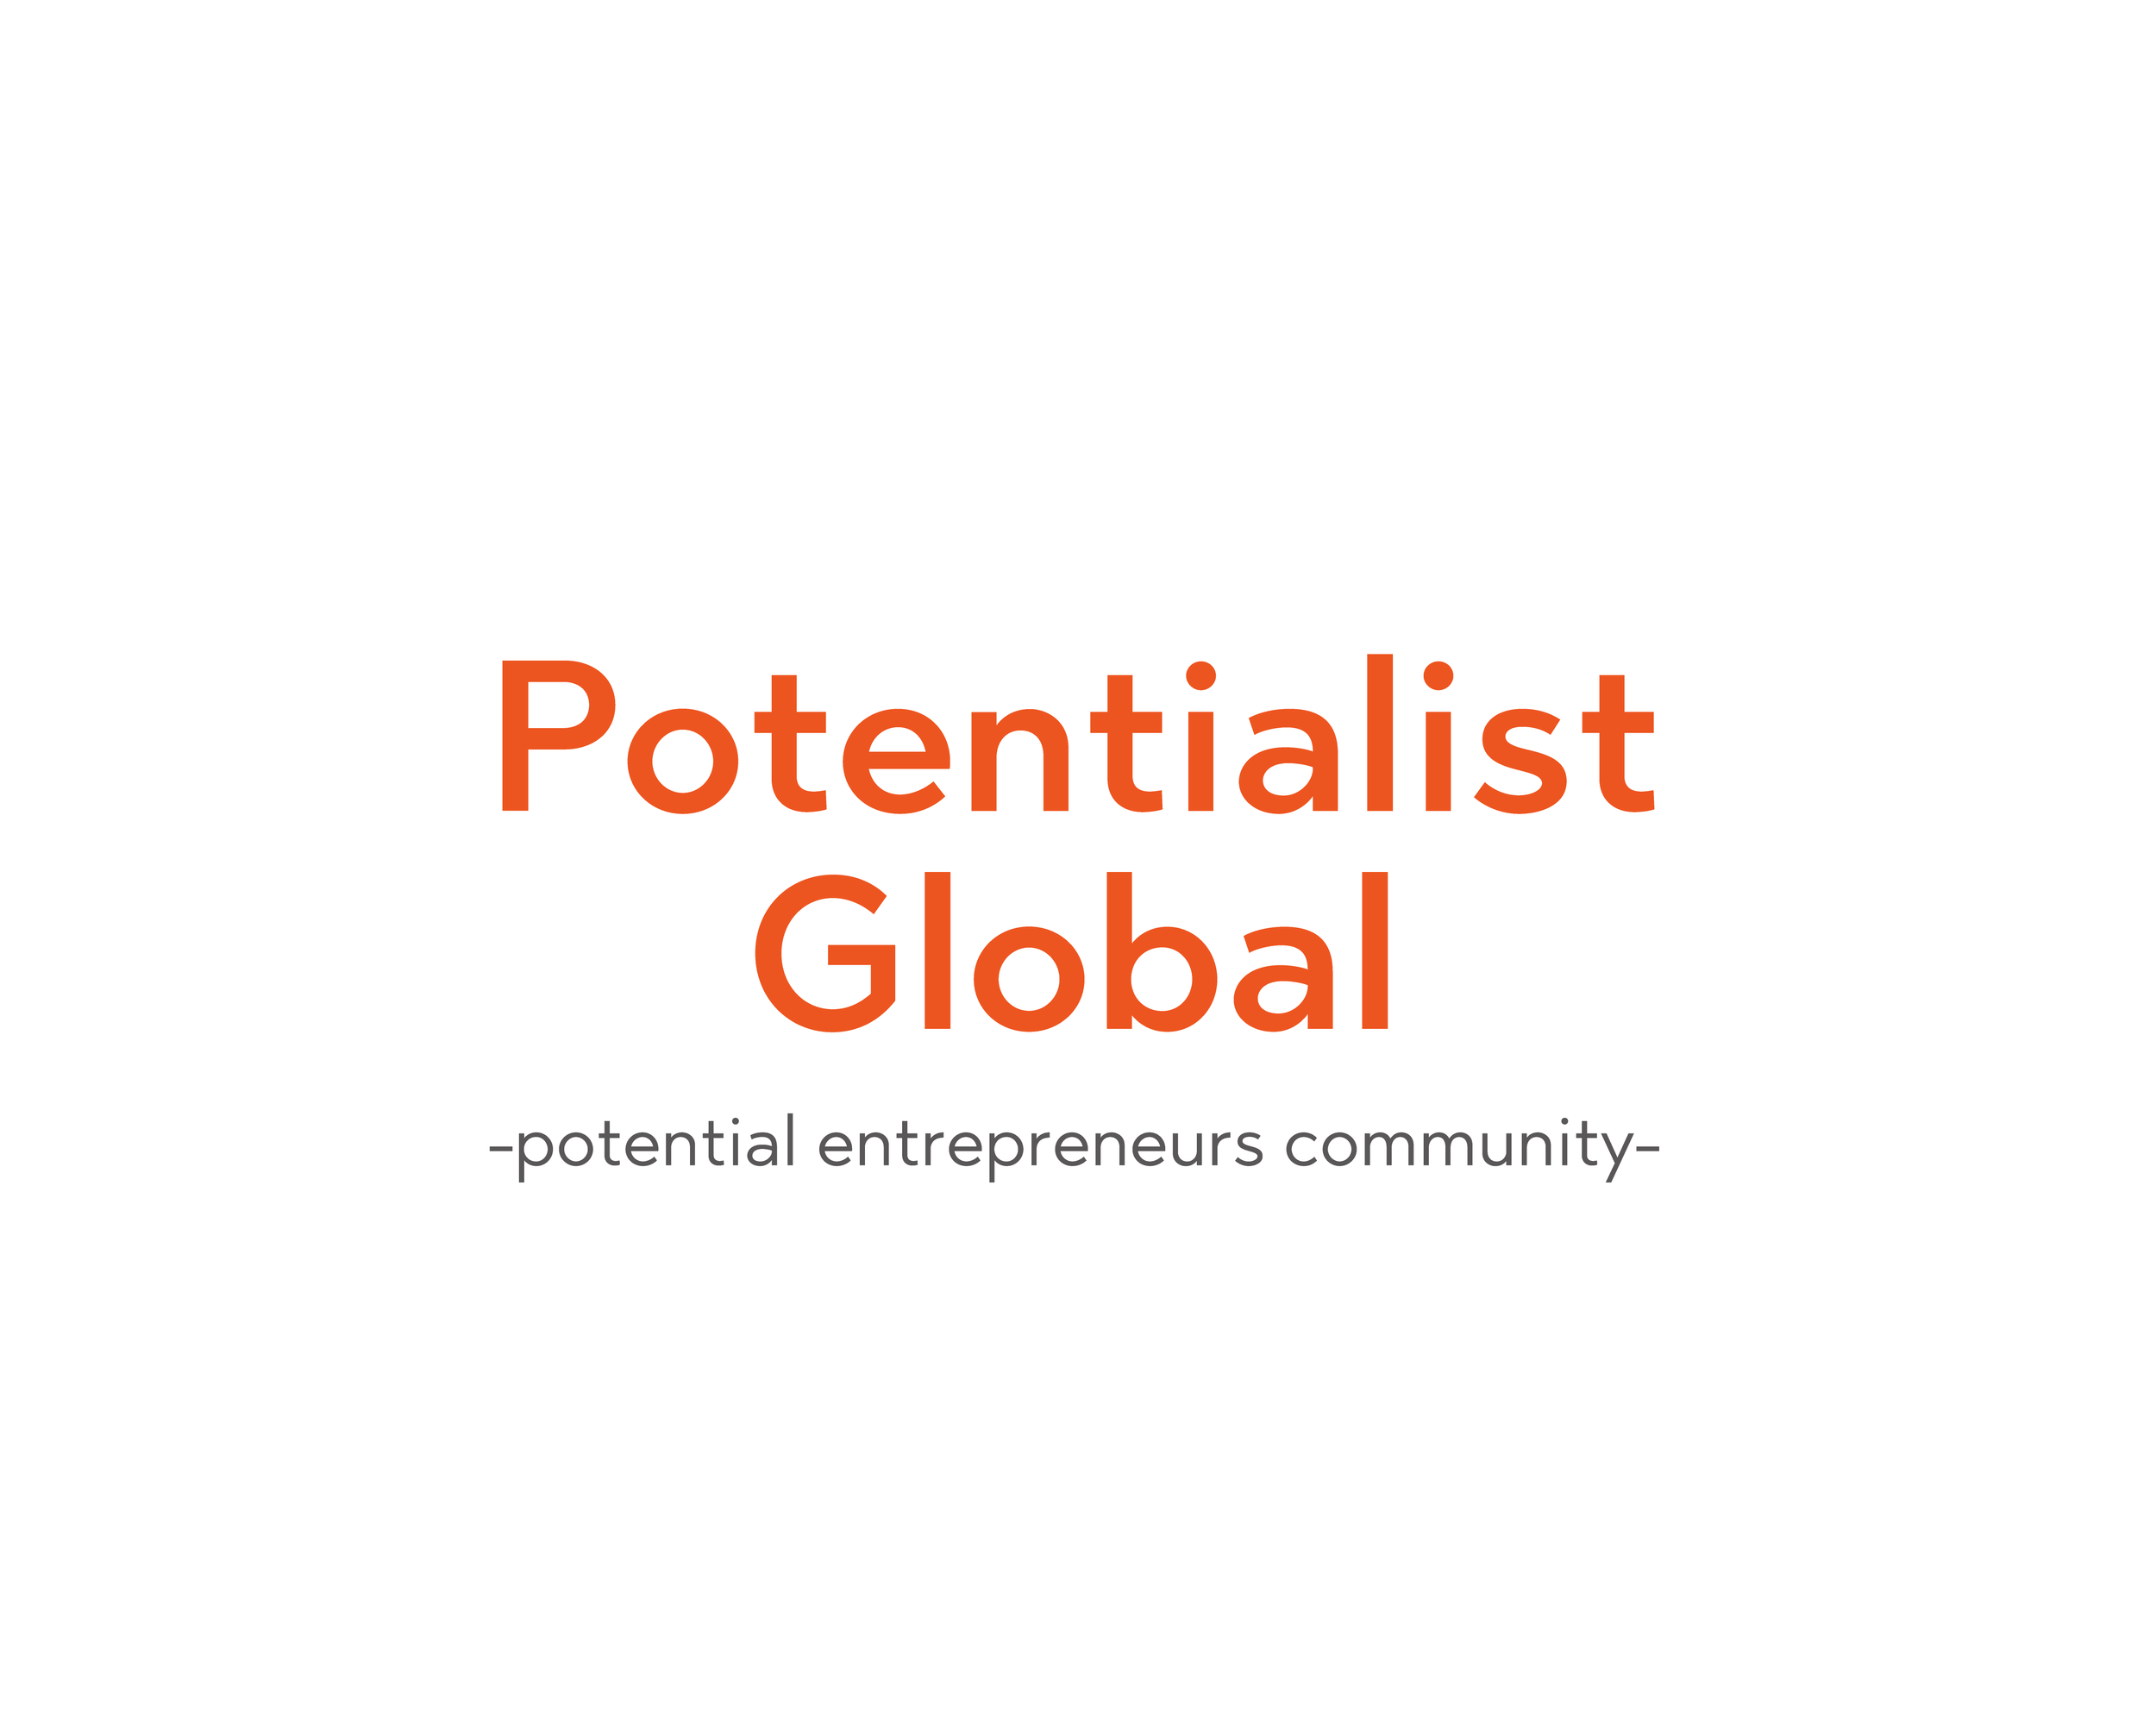 Potentialist-Global.png